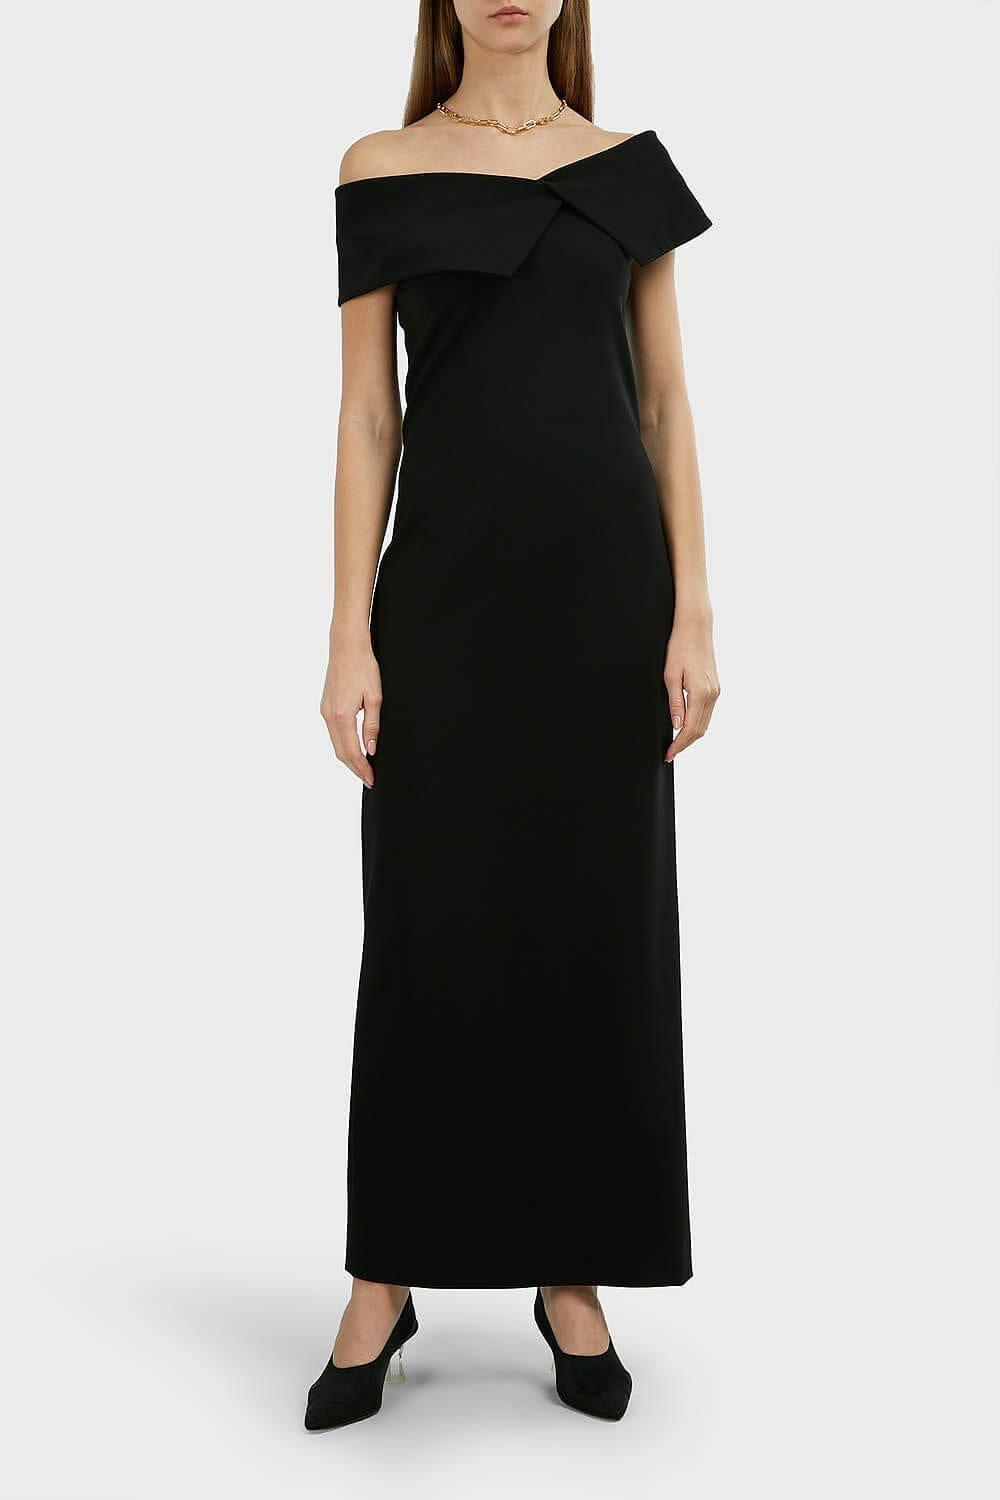 THE ROW Joni Off-Shoulder Maxi Dress